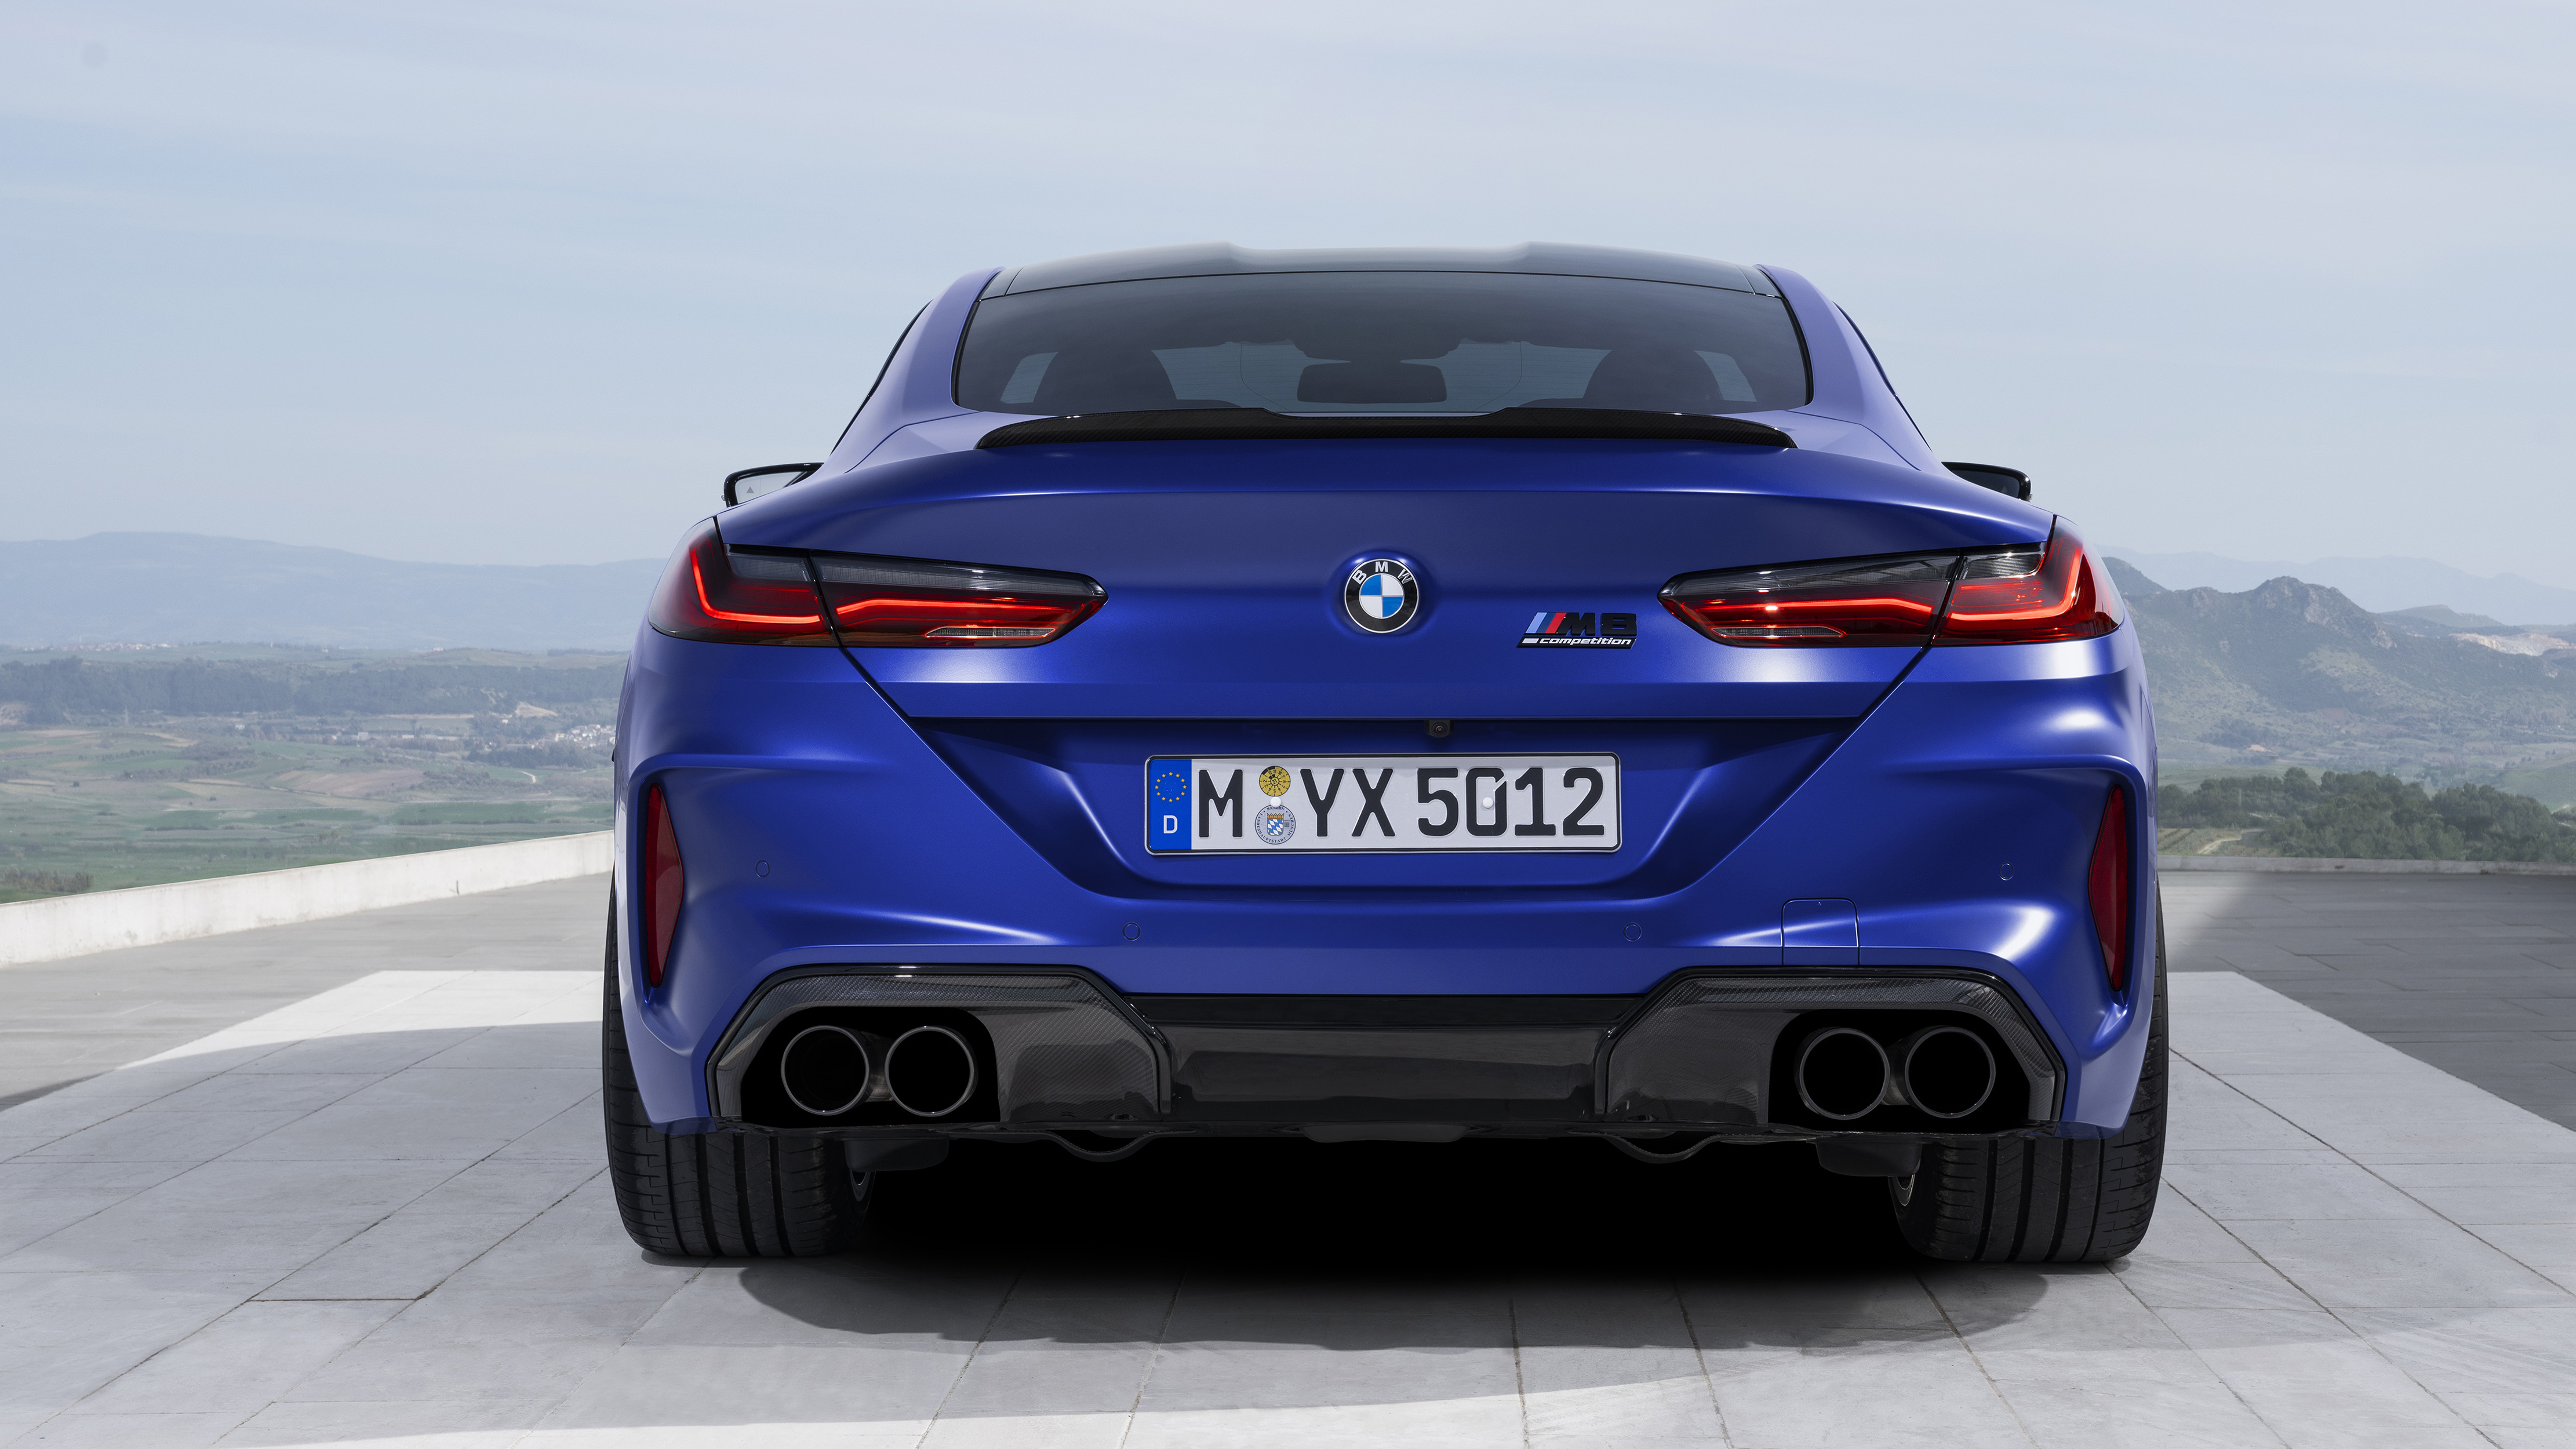 bmw m8 competition coupe 2019 4k 3 wallpaper